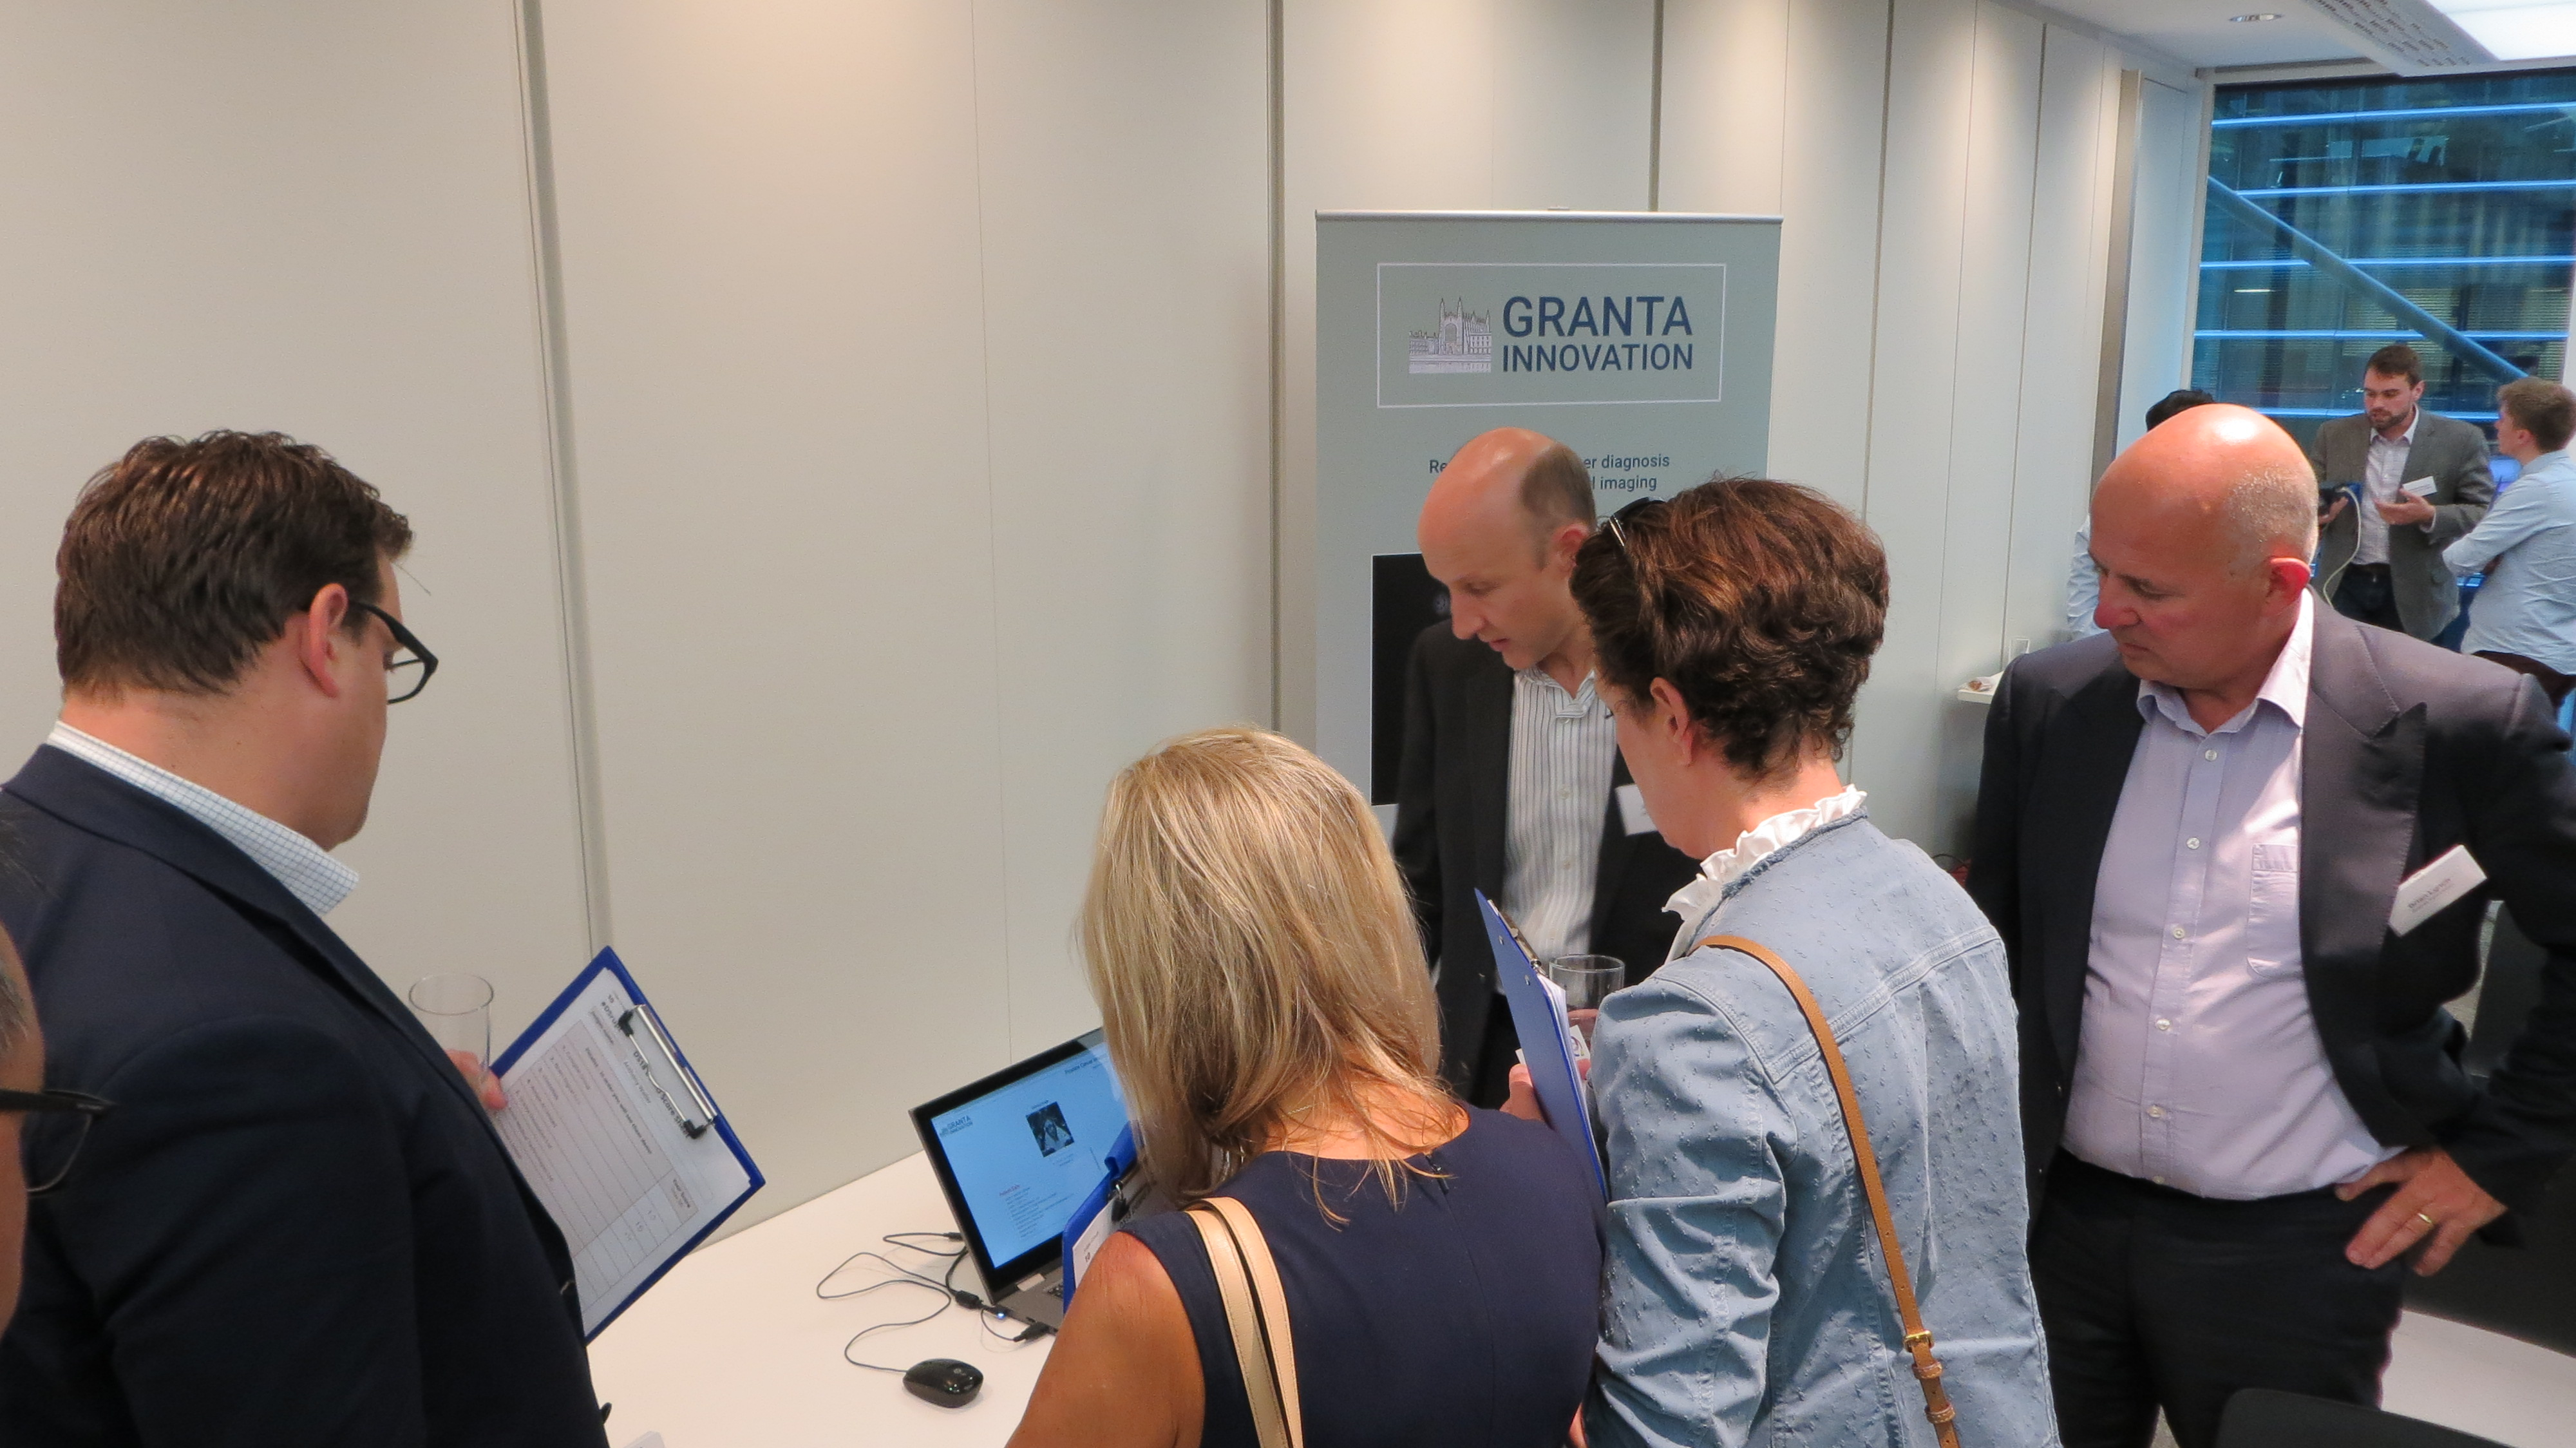 Discovering Start-Ups Granta Innovation